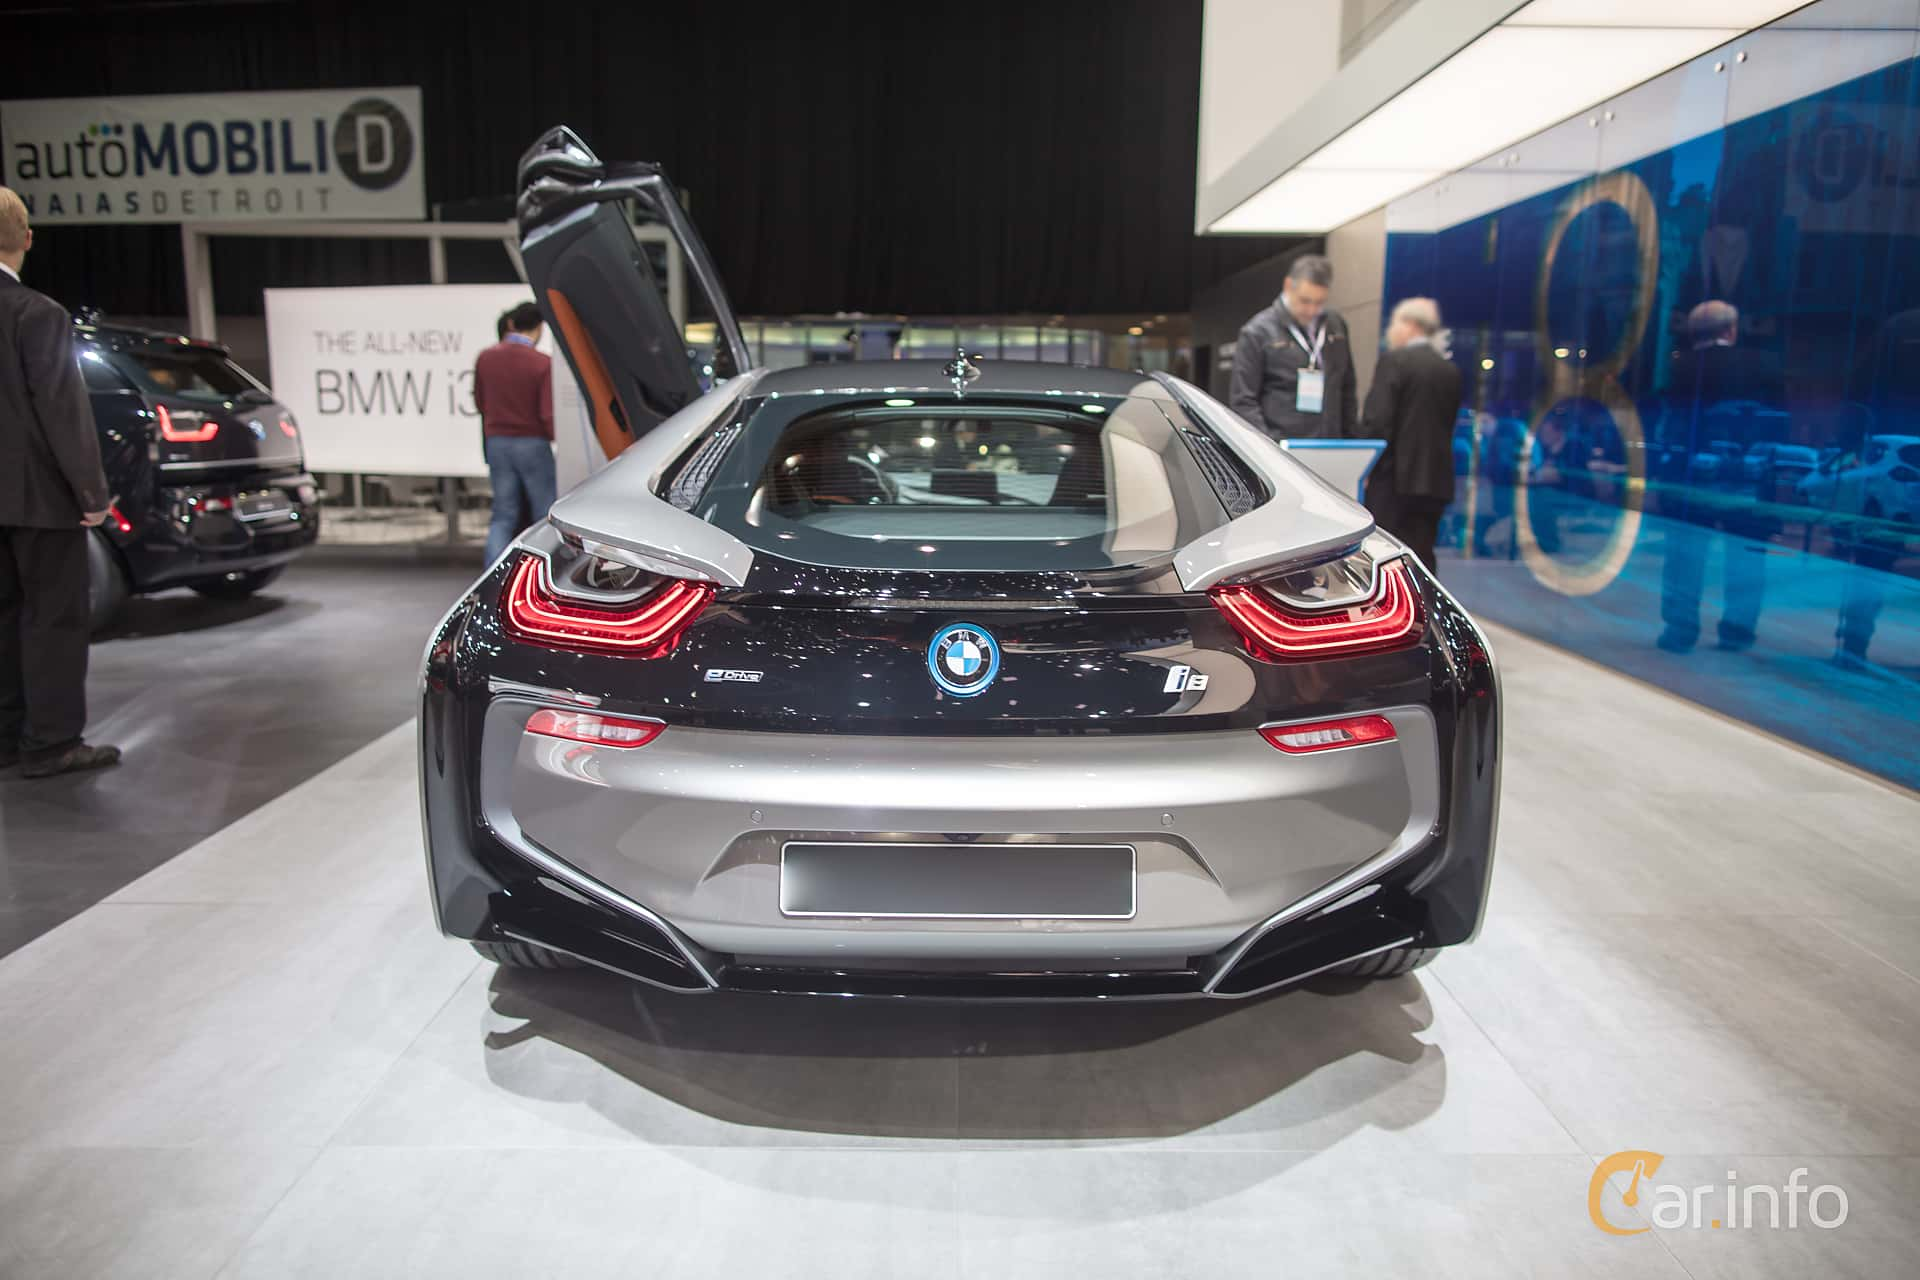 BMW i8 1.5 + 11.6 kWh Steptronic, 374hp, 2018 at North American International Auto Show 2018